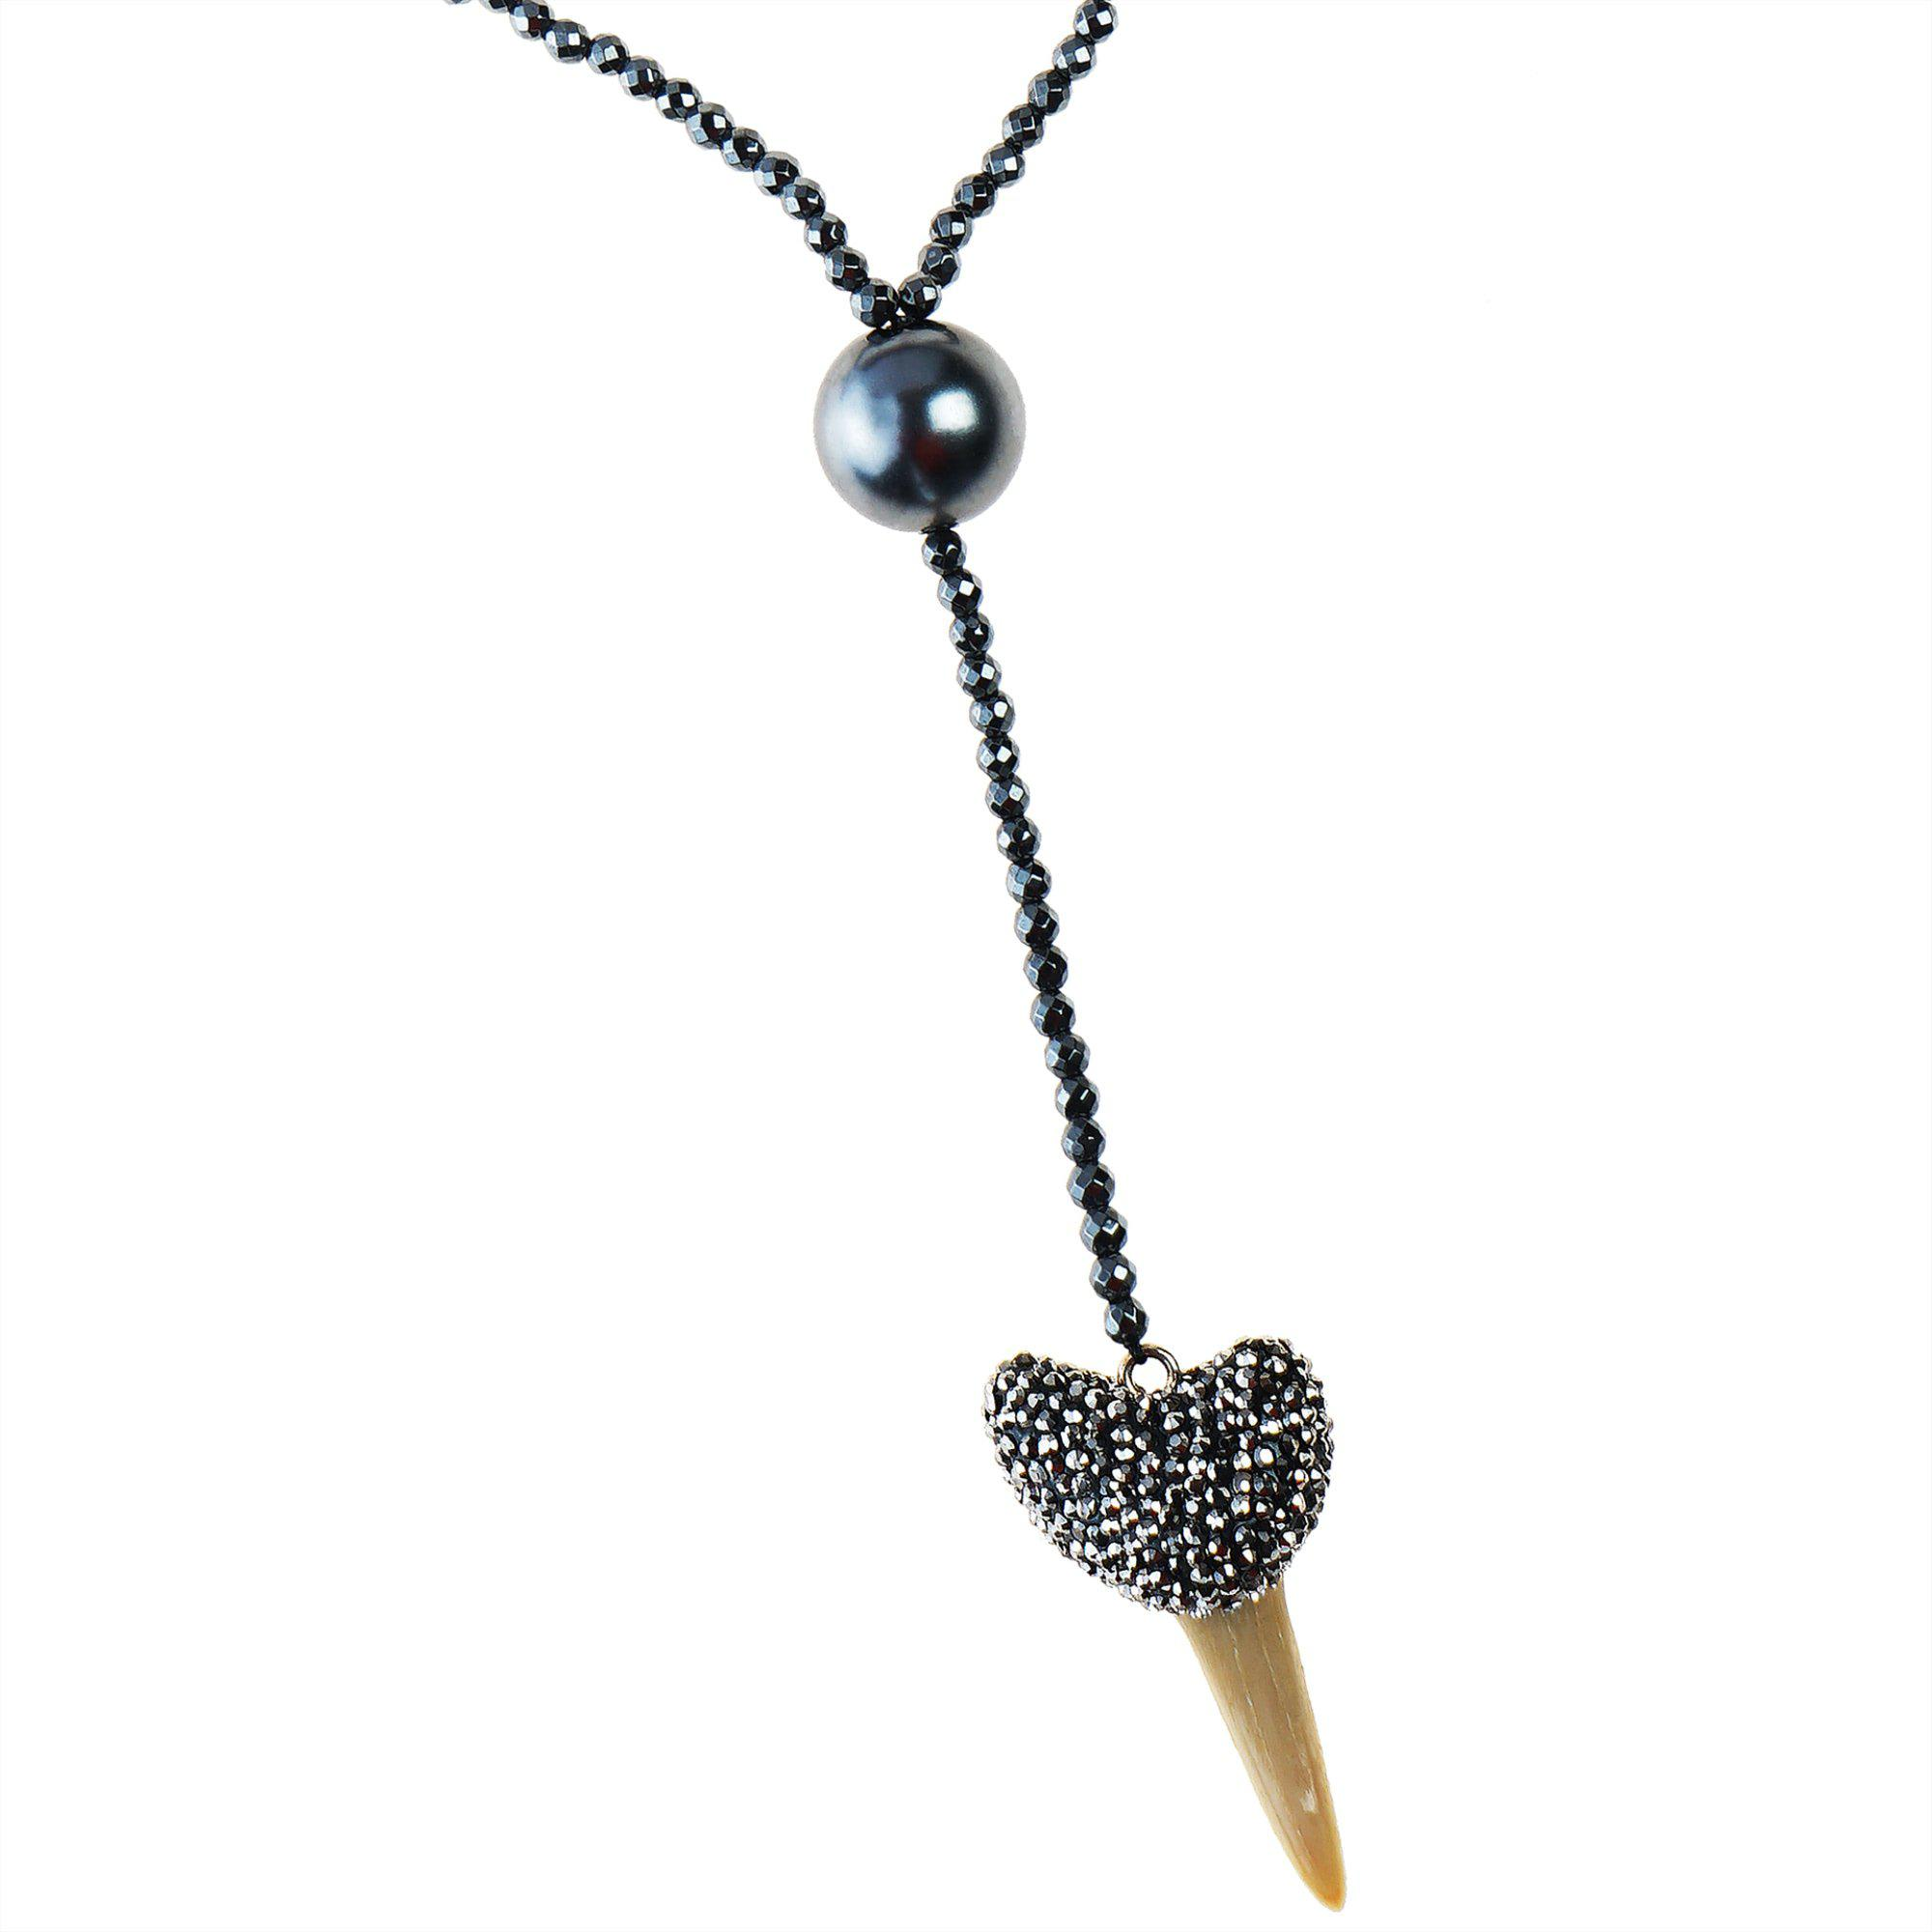 NATURAL TOOTH PENDANT NECKLACE 3